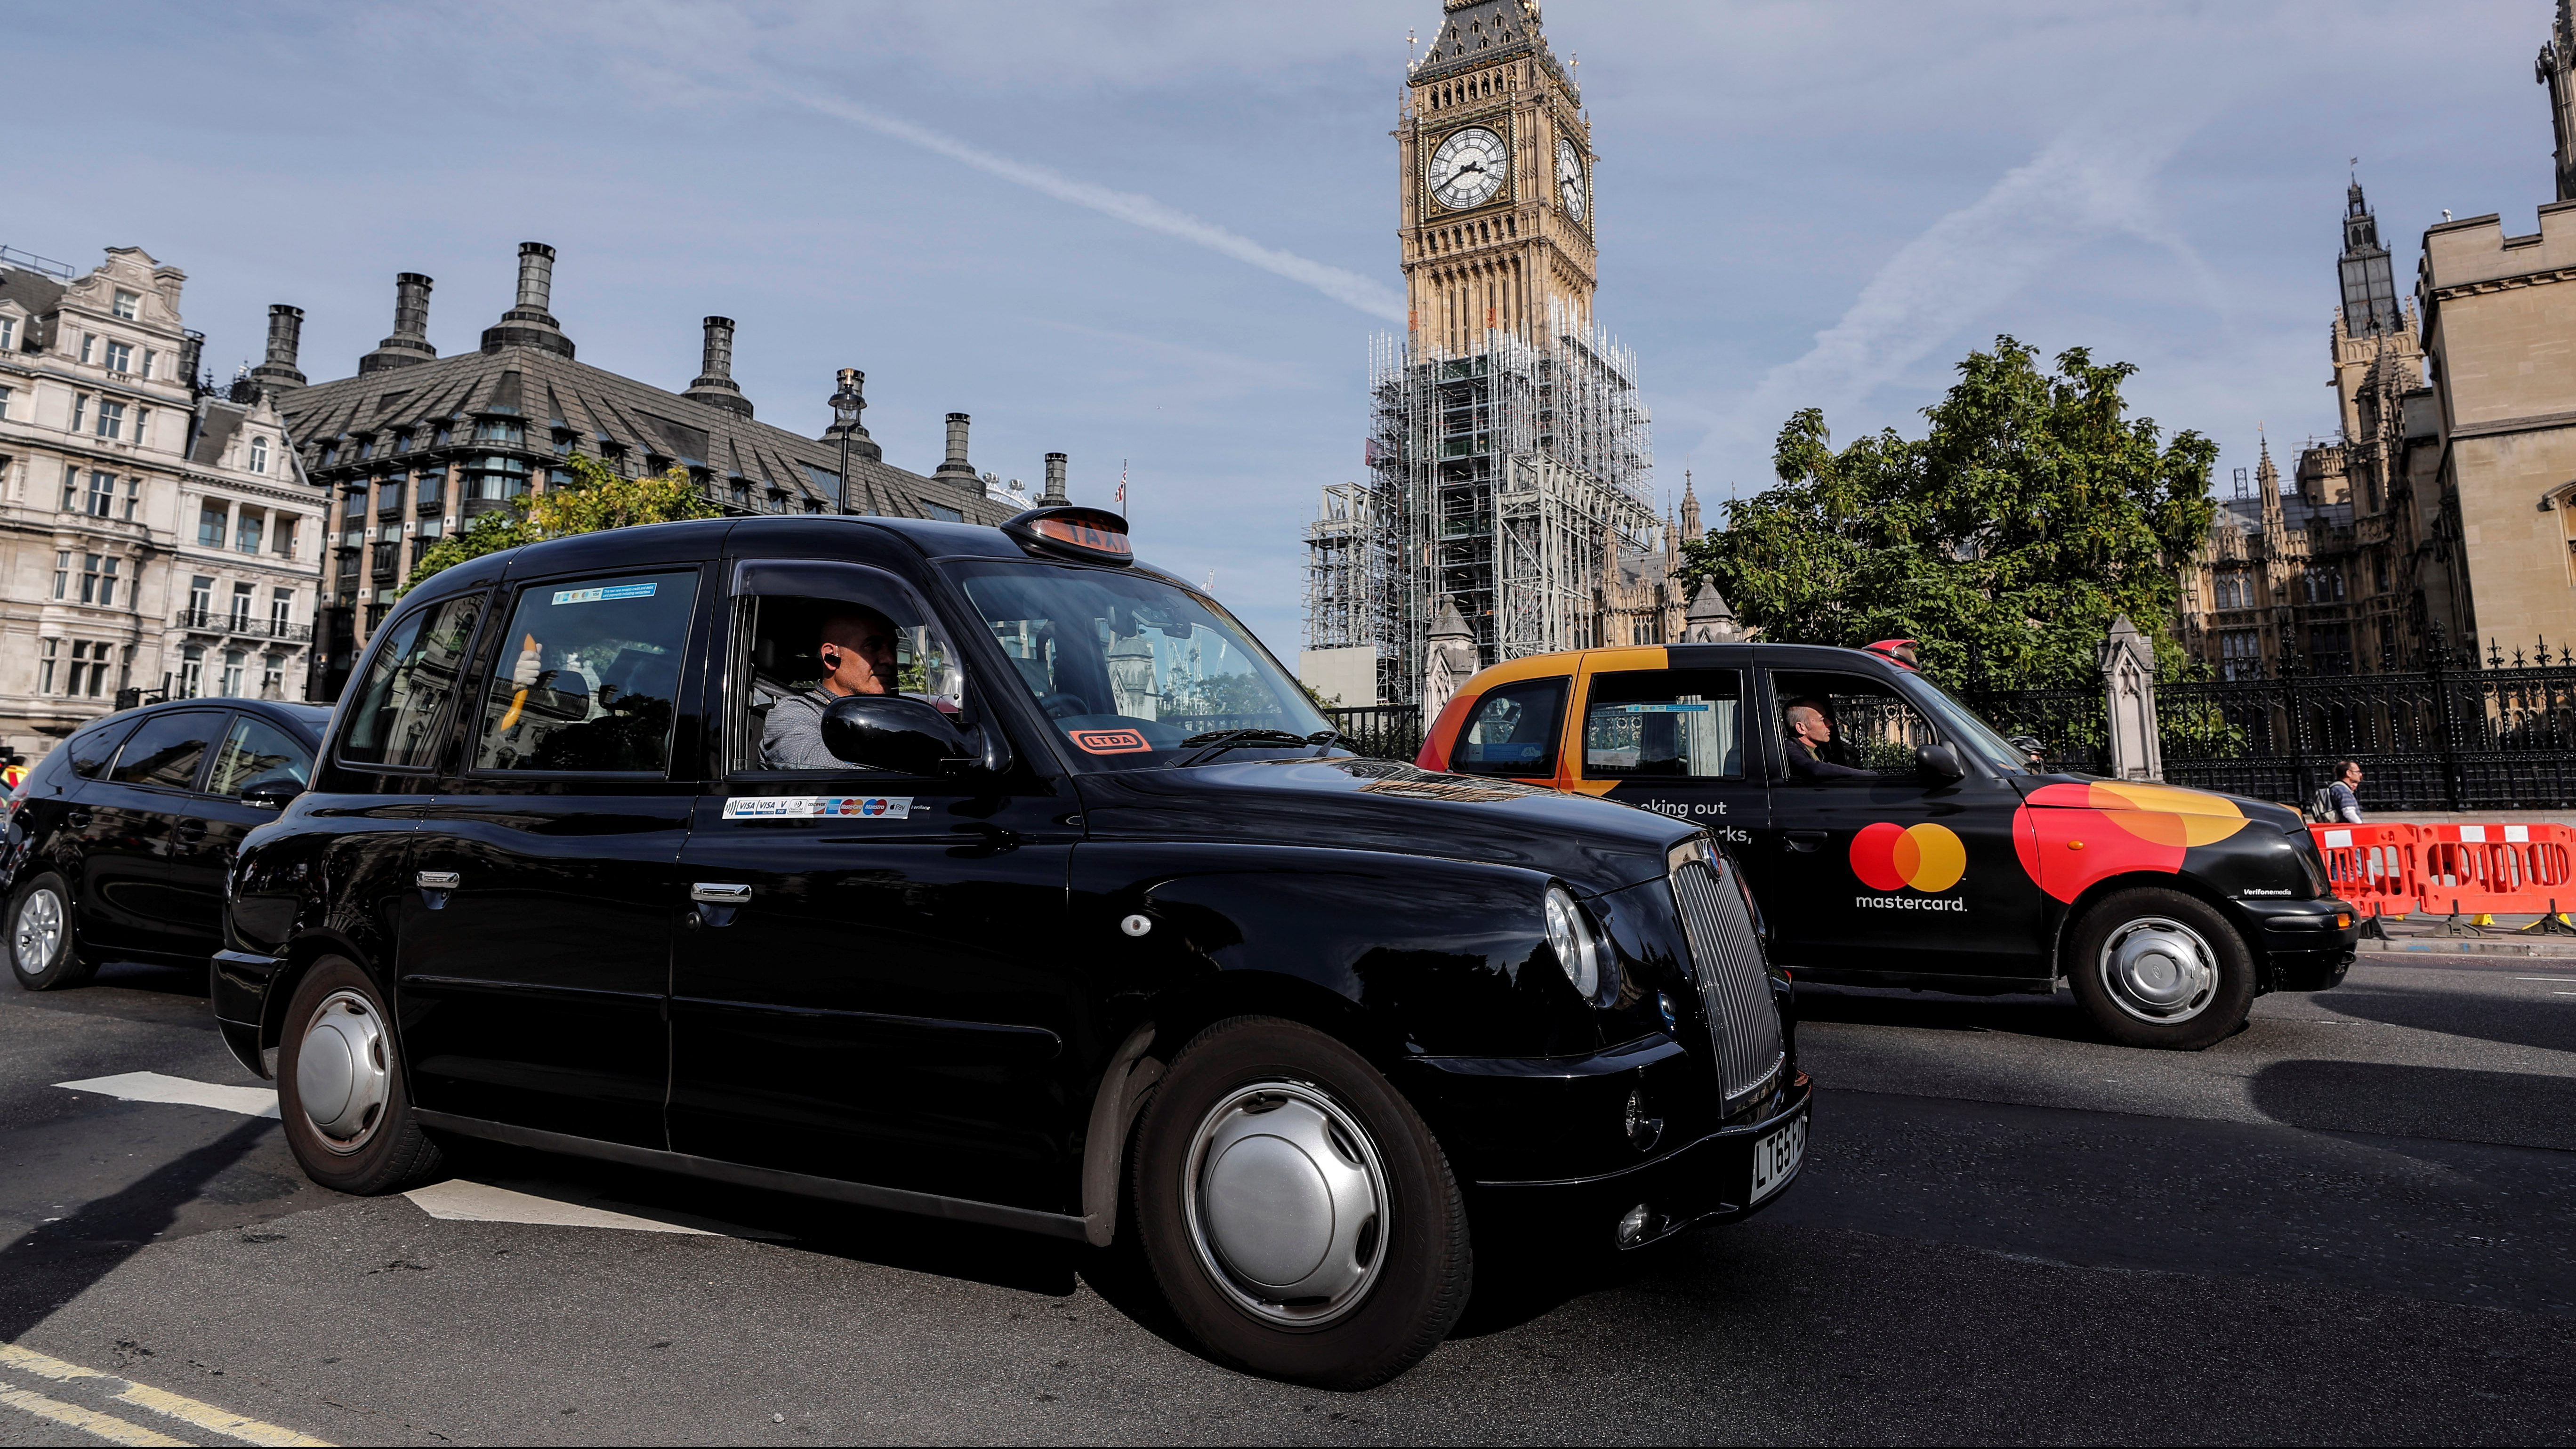 Black taxis pass the Houses of Parliament in London